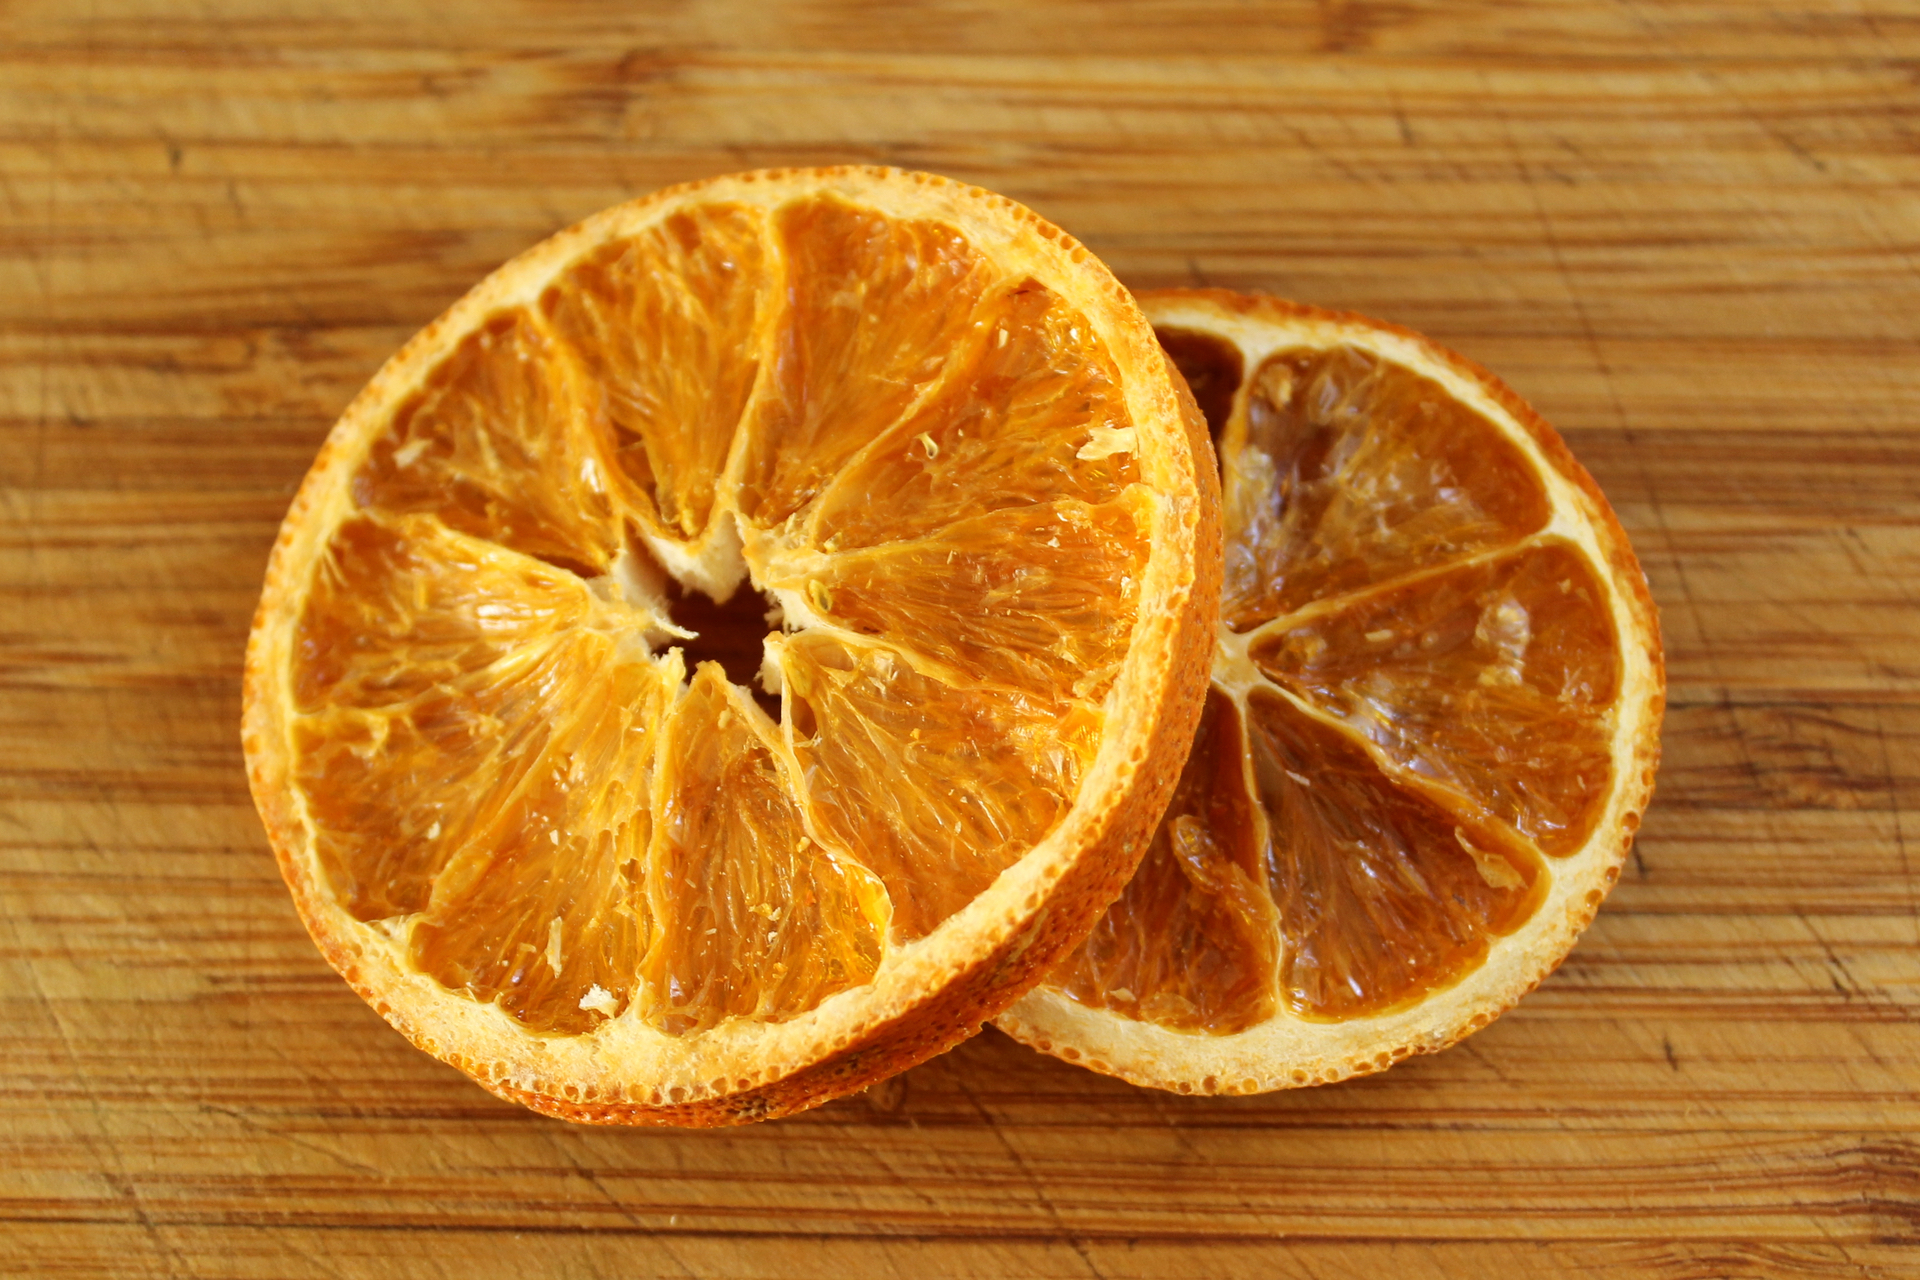 Dried orange slices.